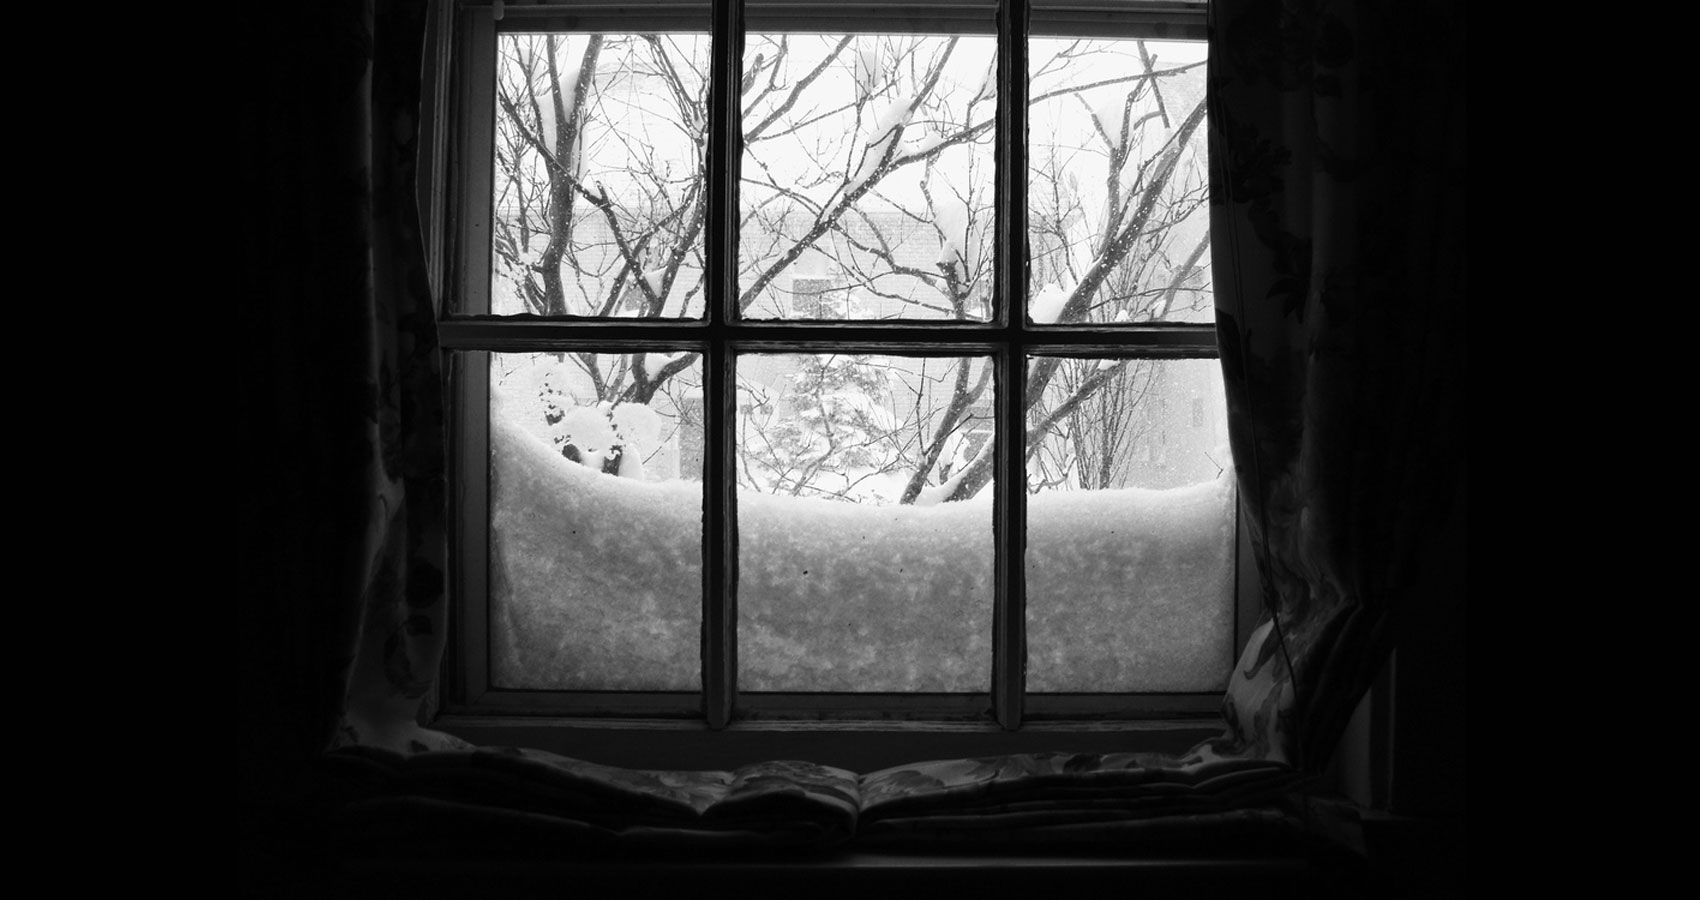 A February view from my window written by Arusha Topazzini at Spillwords.com